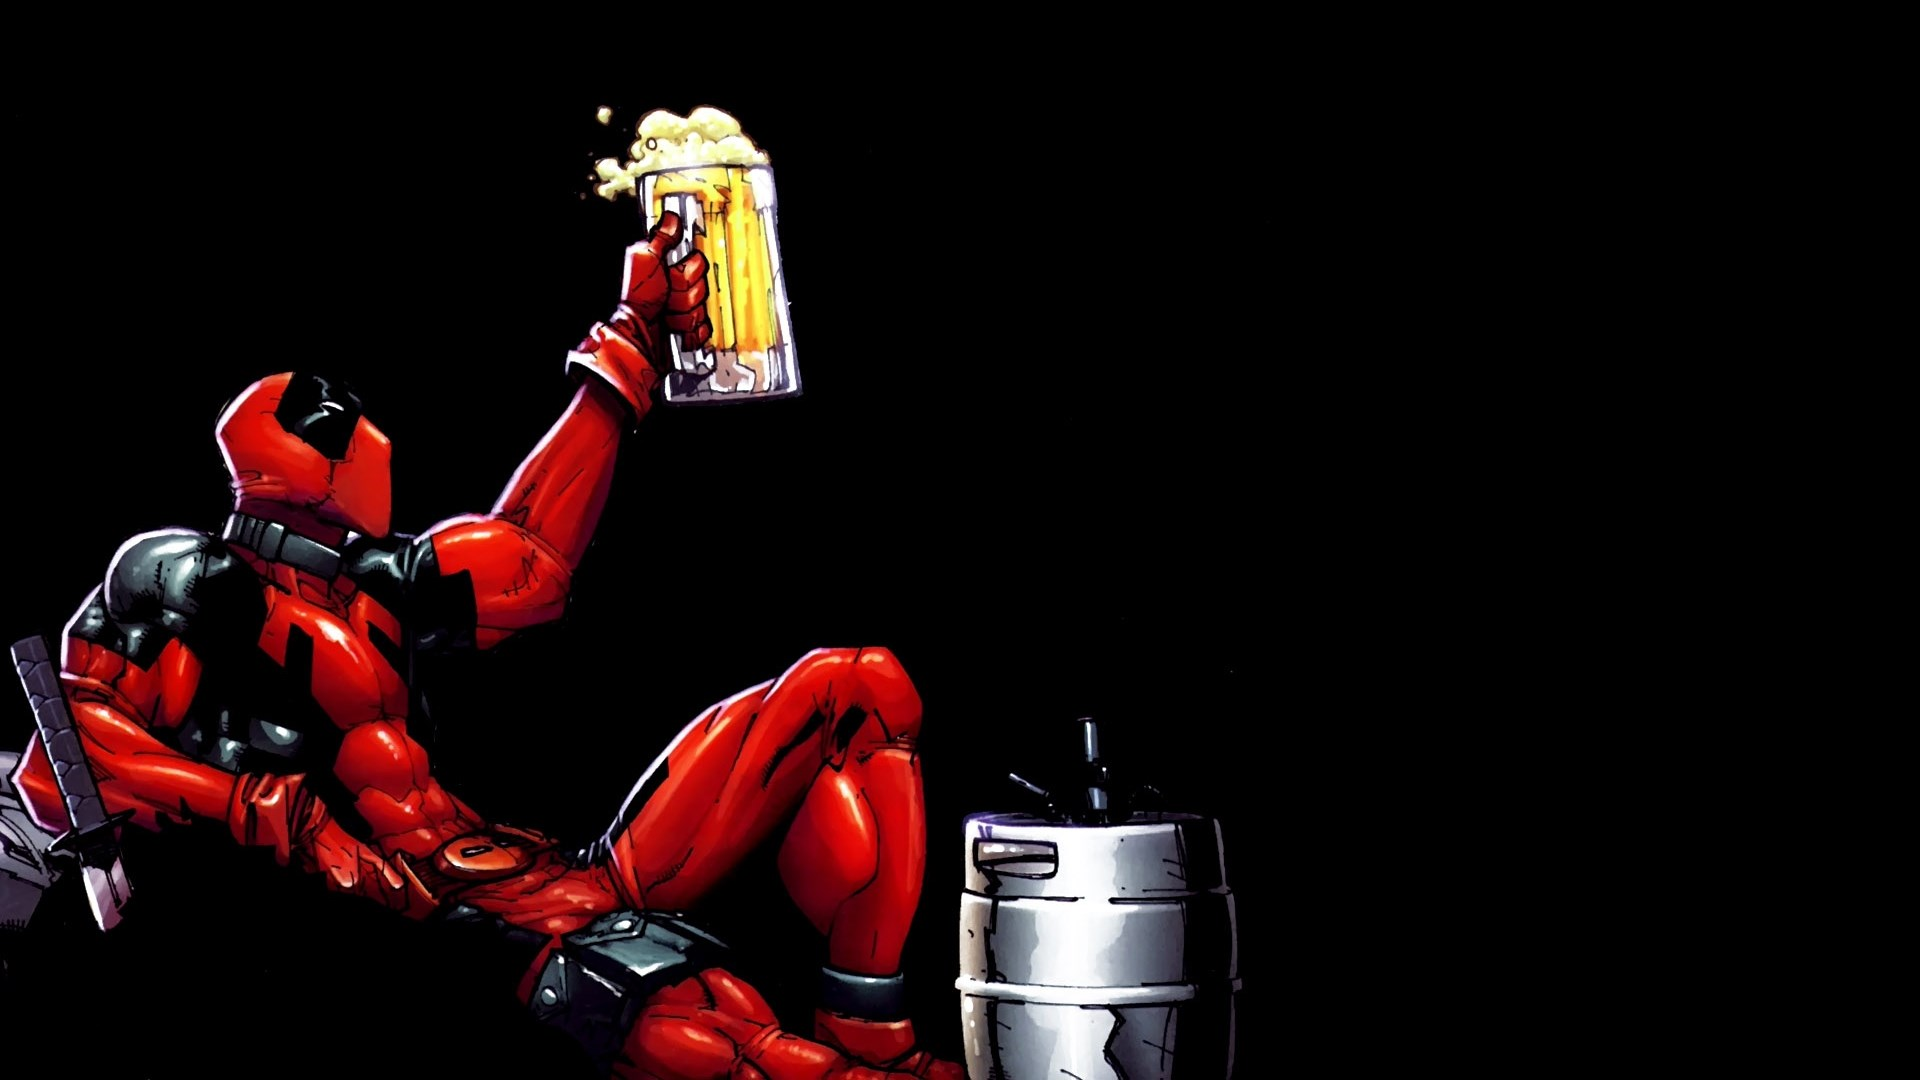 1920x1080-images-deadpool-wallpaper-wpc9001019